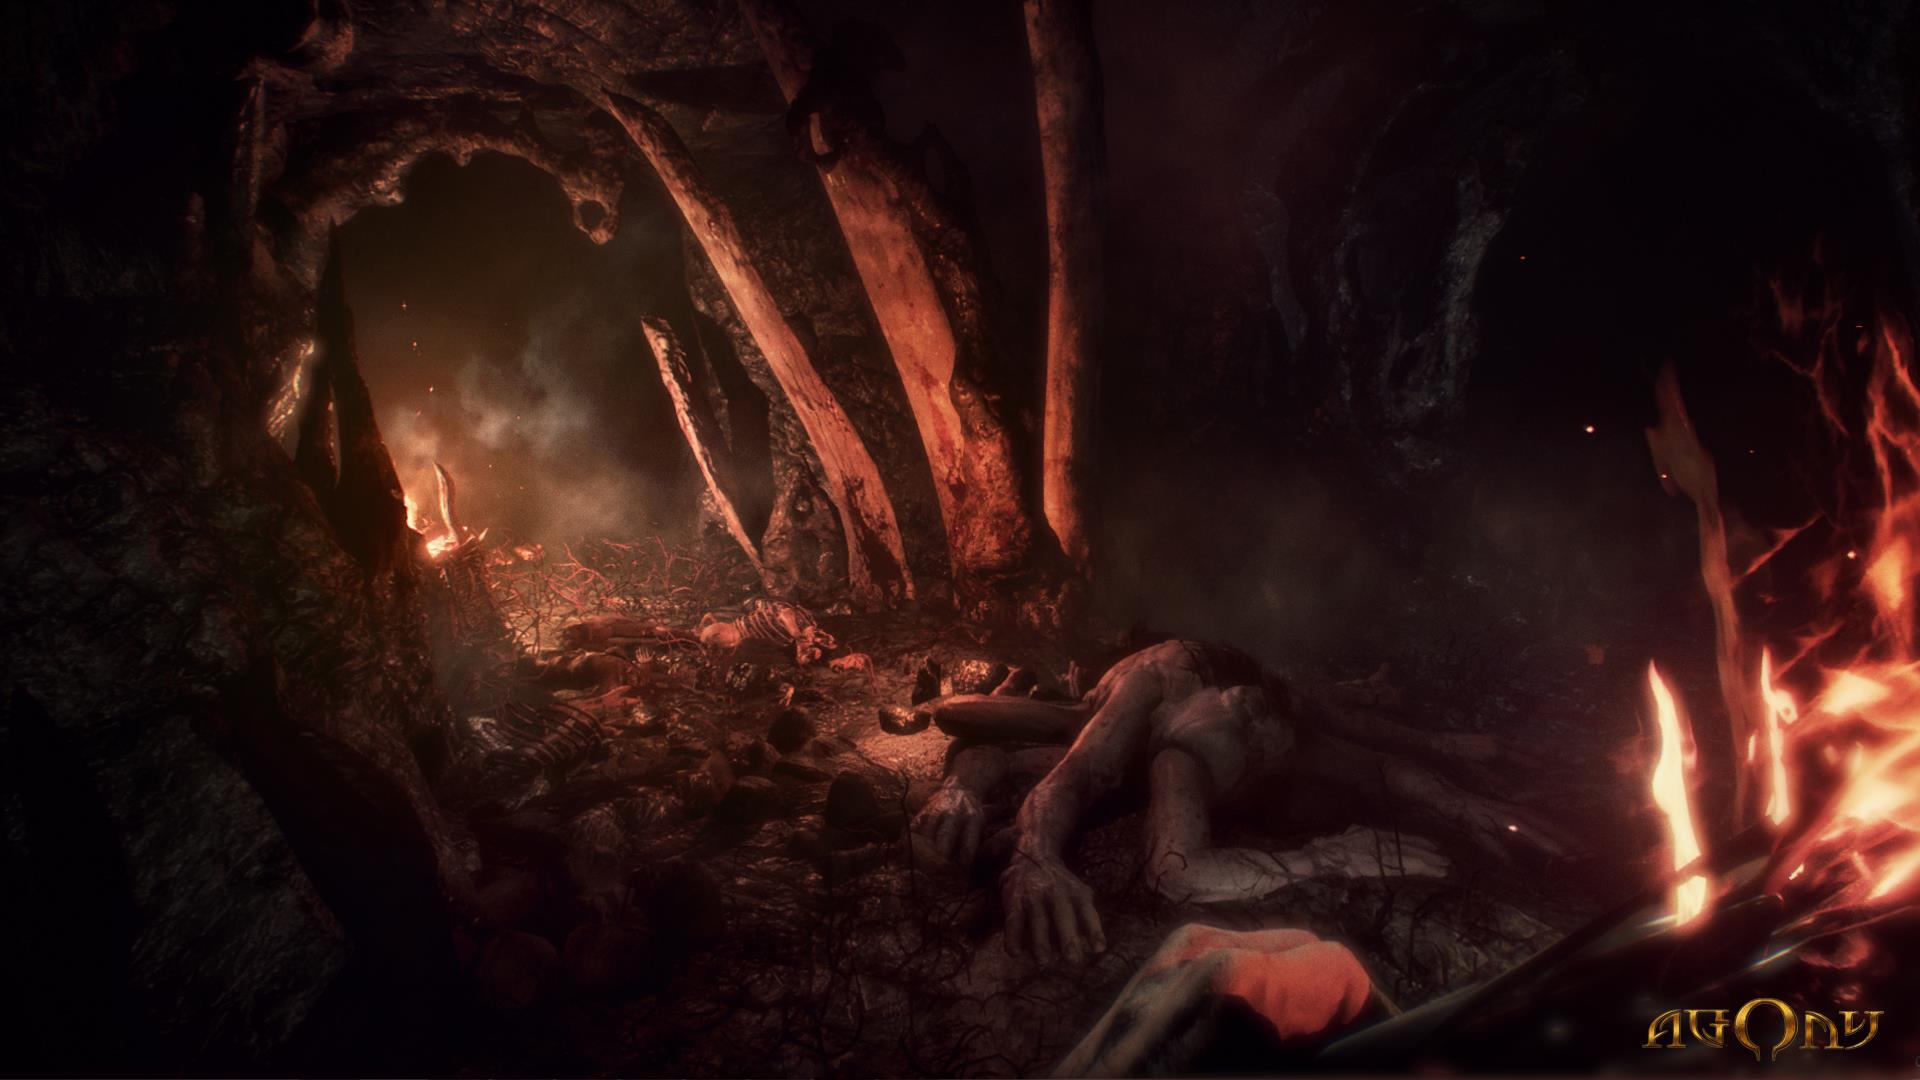 Agony Is A First Person Survival Horror Set In Hell VG247